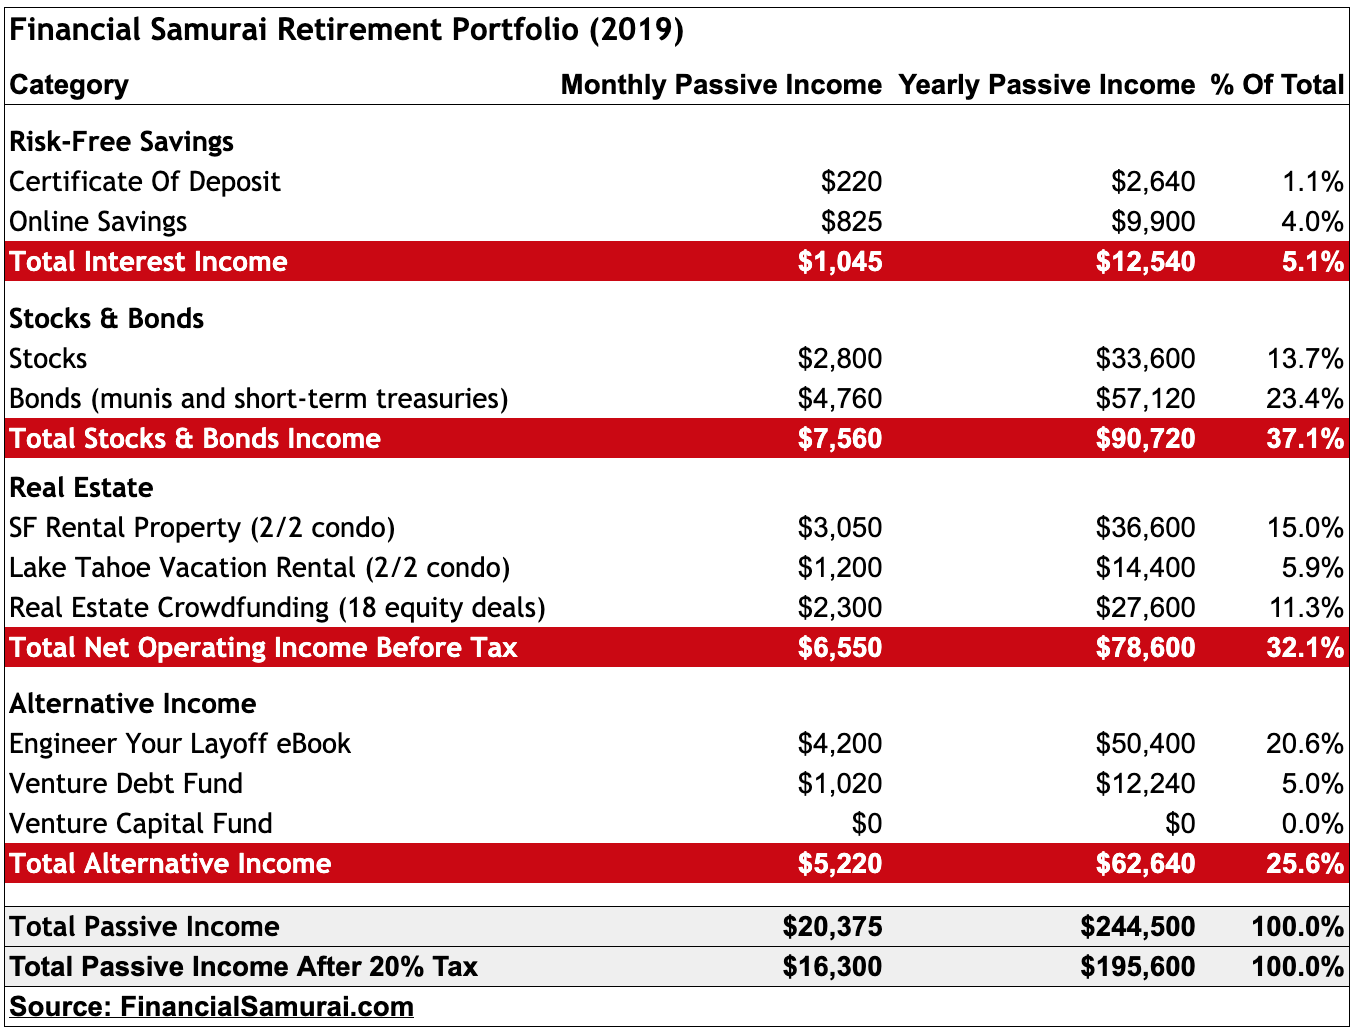 In Search Of FIRE: Financial Samurai Retirement Portfolio Review 2019